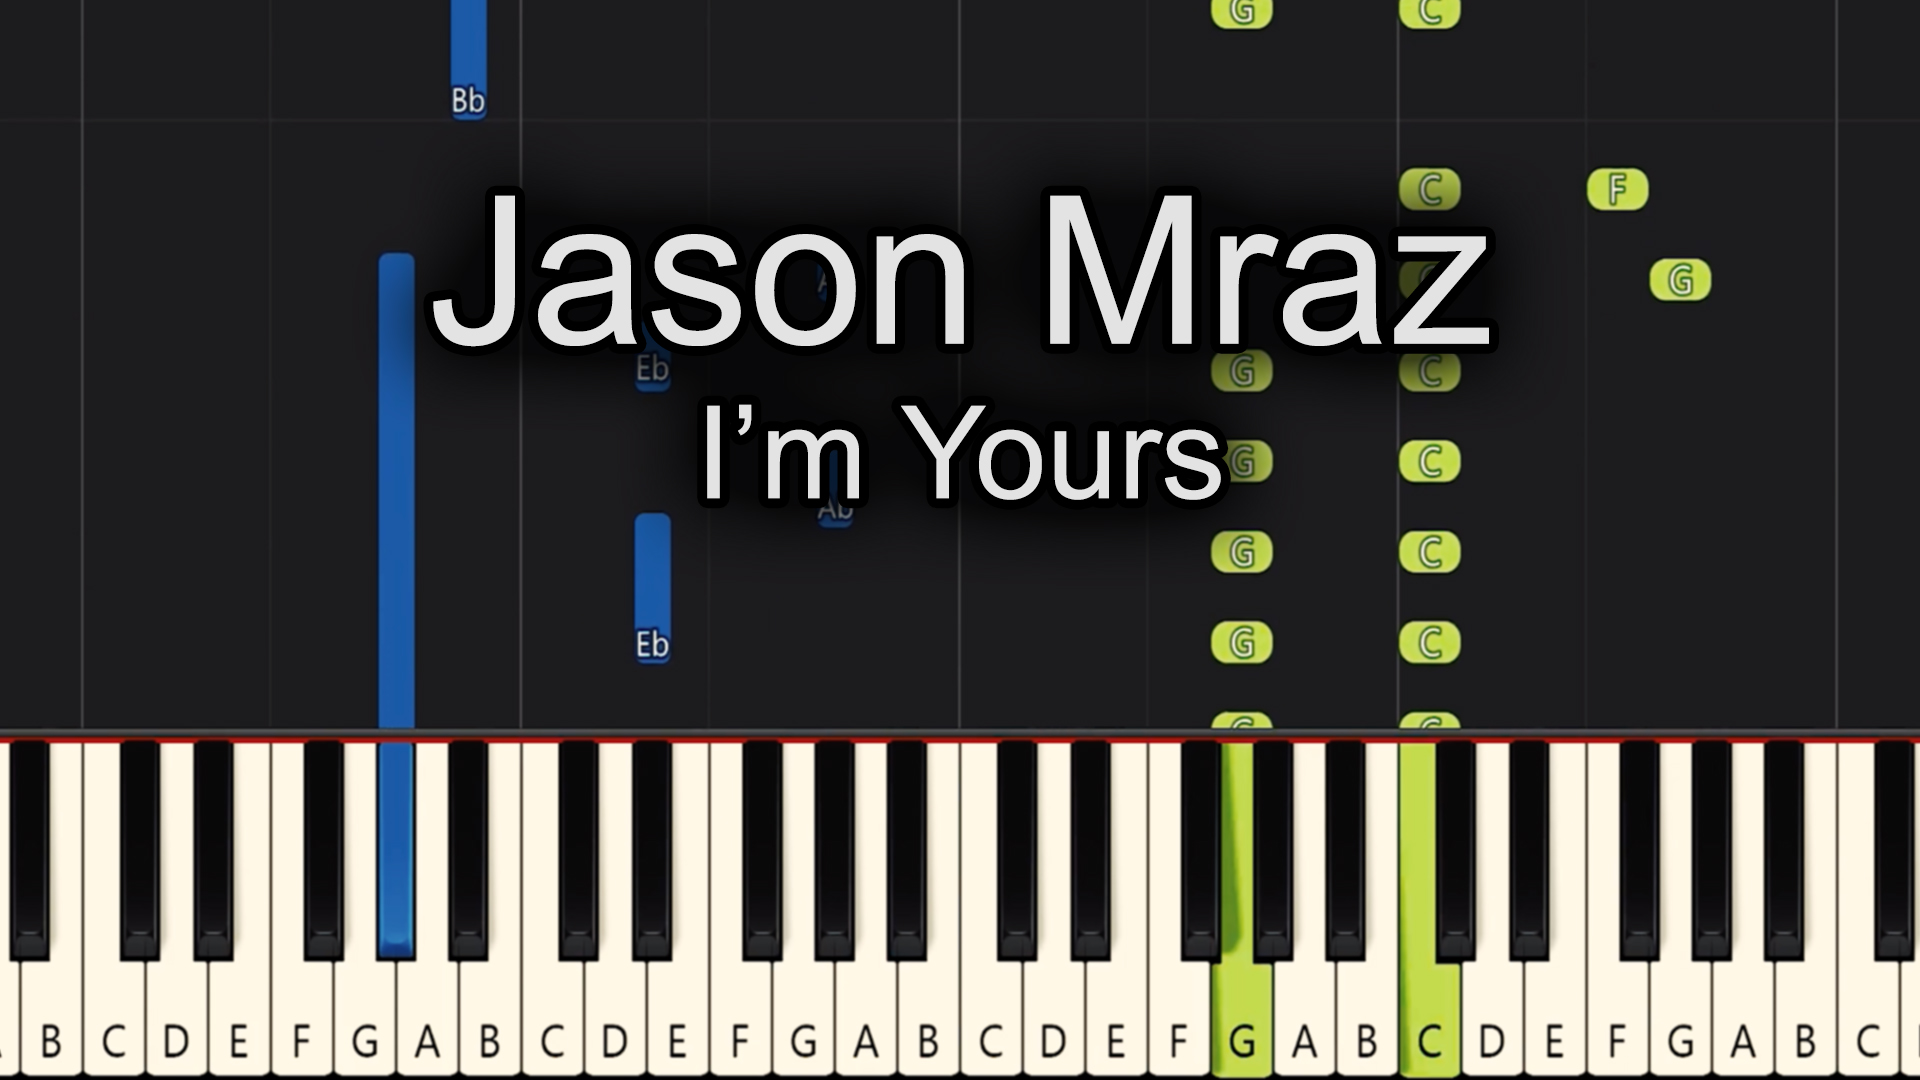 Jason Mraz – I'm Yours – Chords